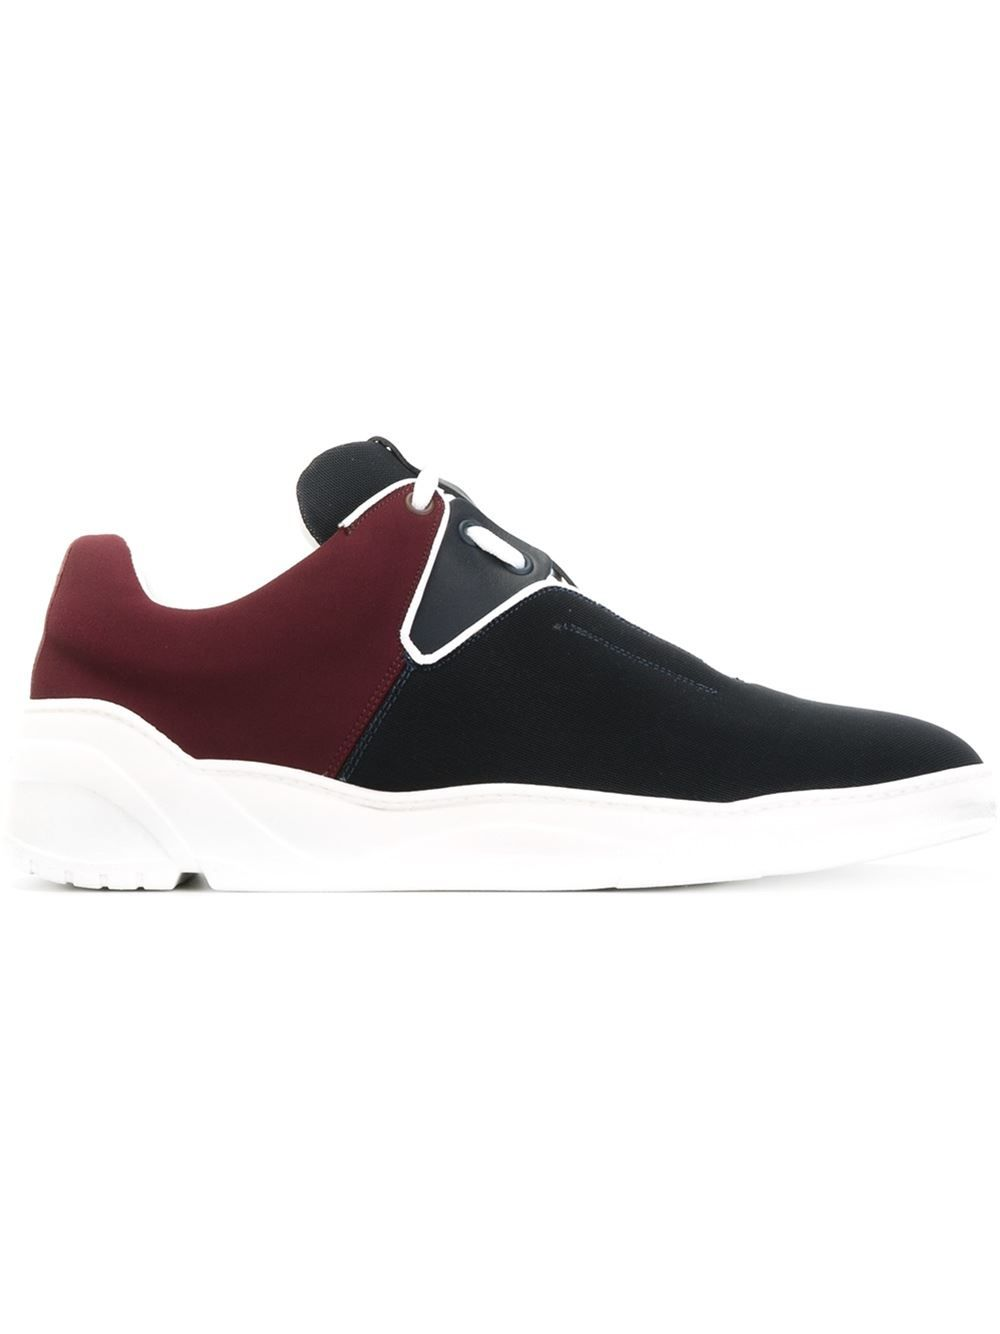 dior homme panelled running sneakers adidas archive